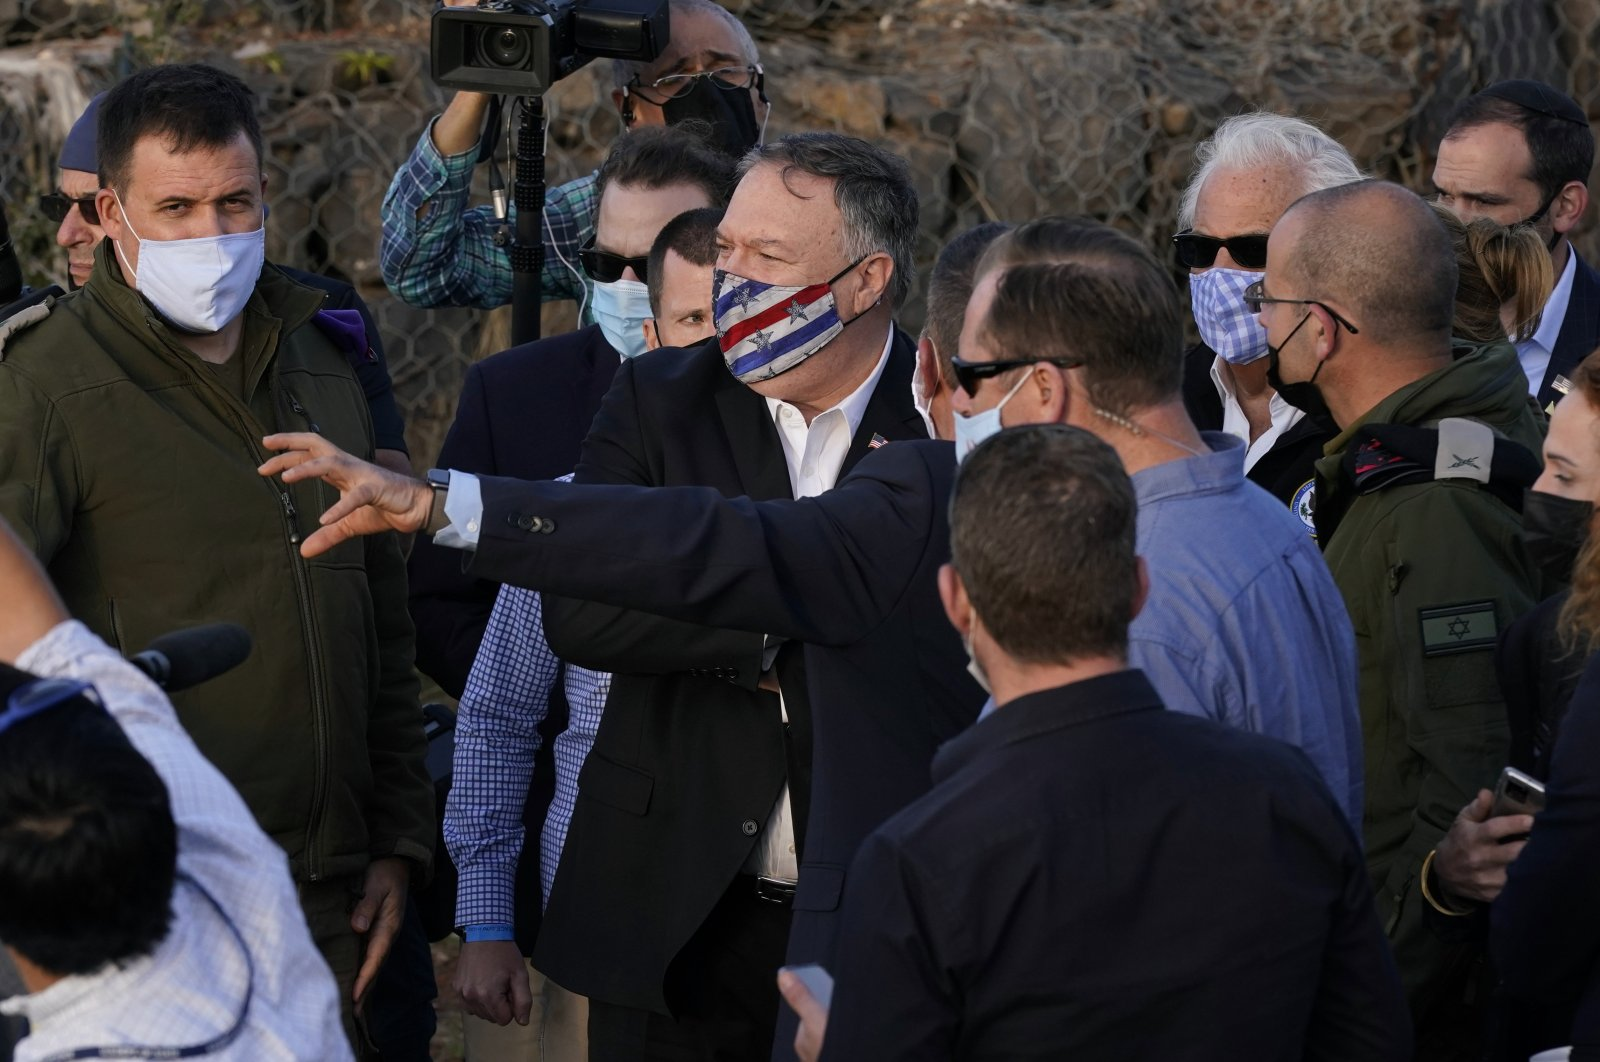 U.S. Secretary of State Mike Pompeo (C) listens during a security briefing on Mount Bental in the Israeli-occupied Golan Heights, overlooking the Israeli-Syrian border, Nov. 19, 2020. (AP Photo)